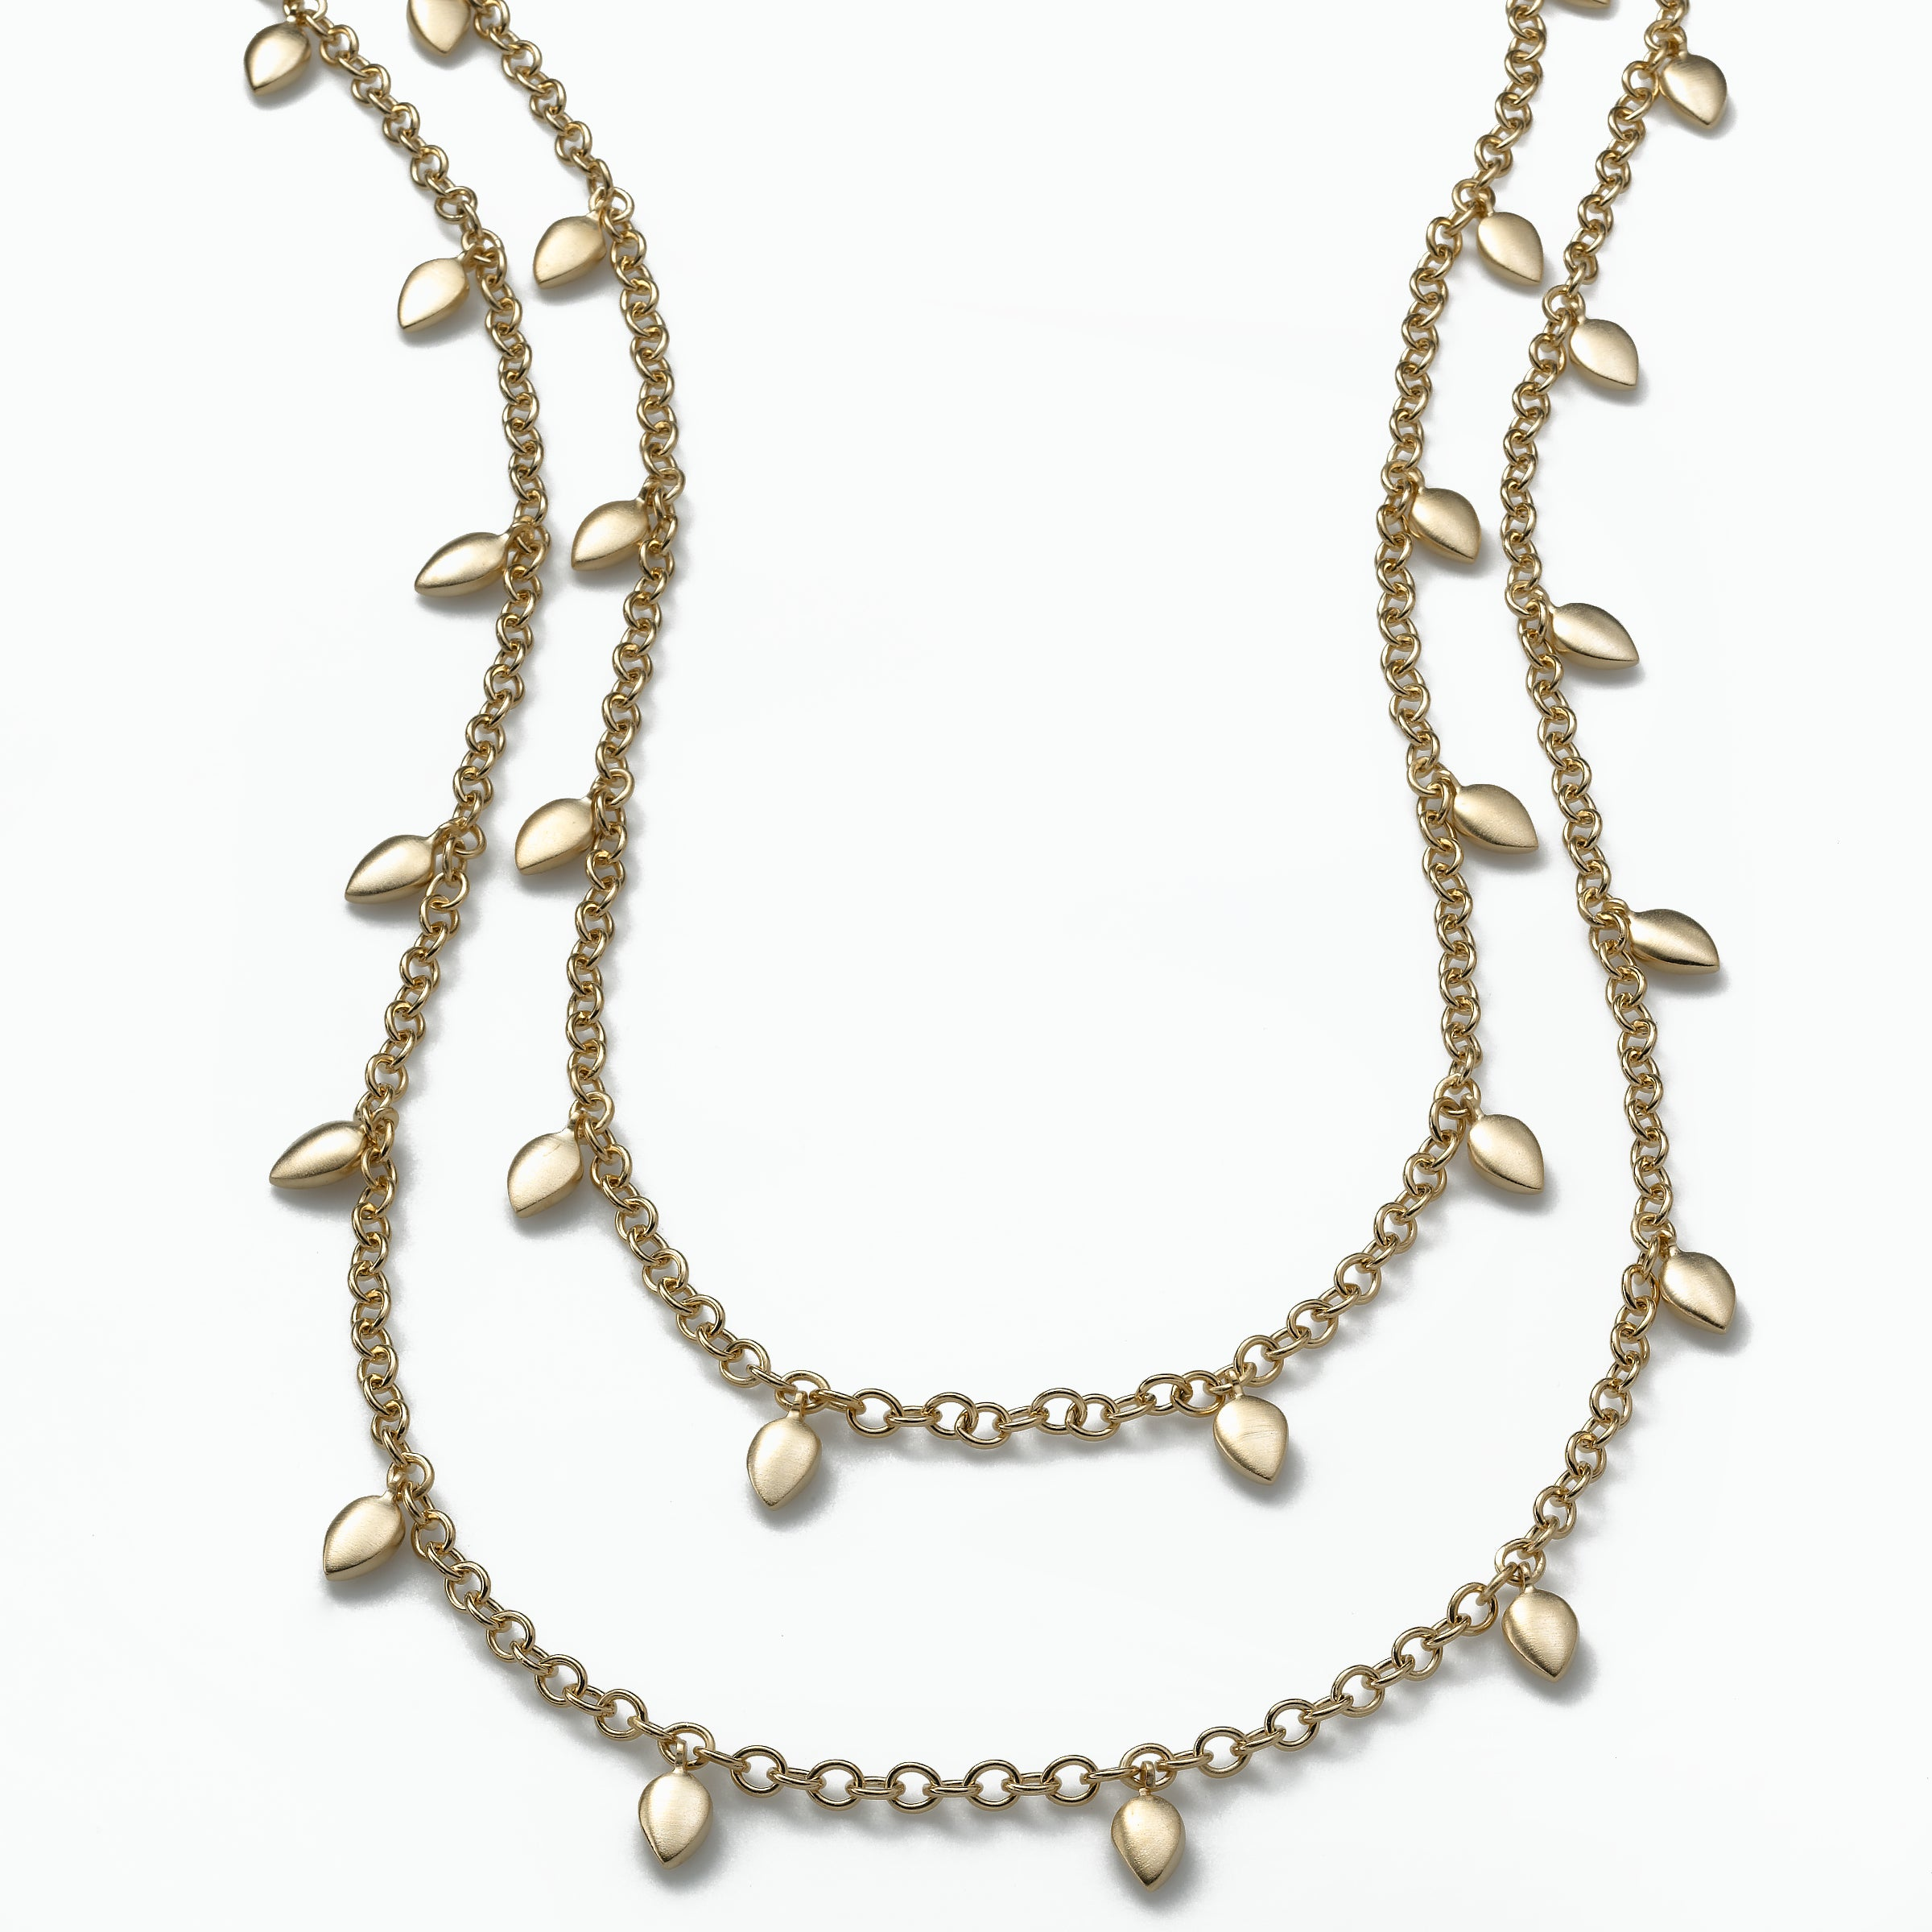 Real Jewels 48 inch Vermeil Chain Necklace, Sterling and 18K